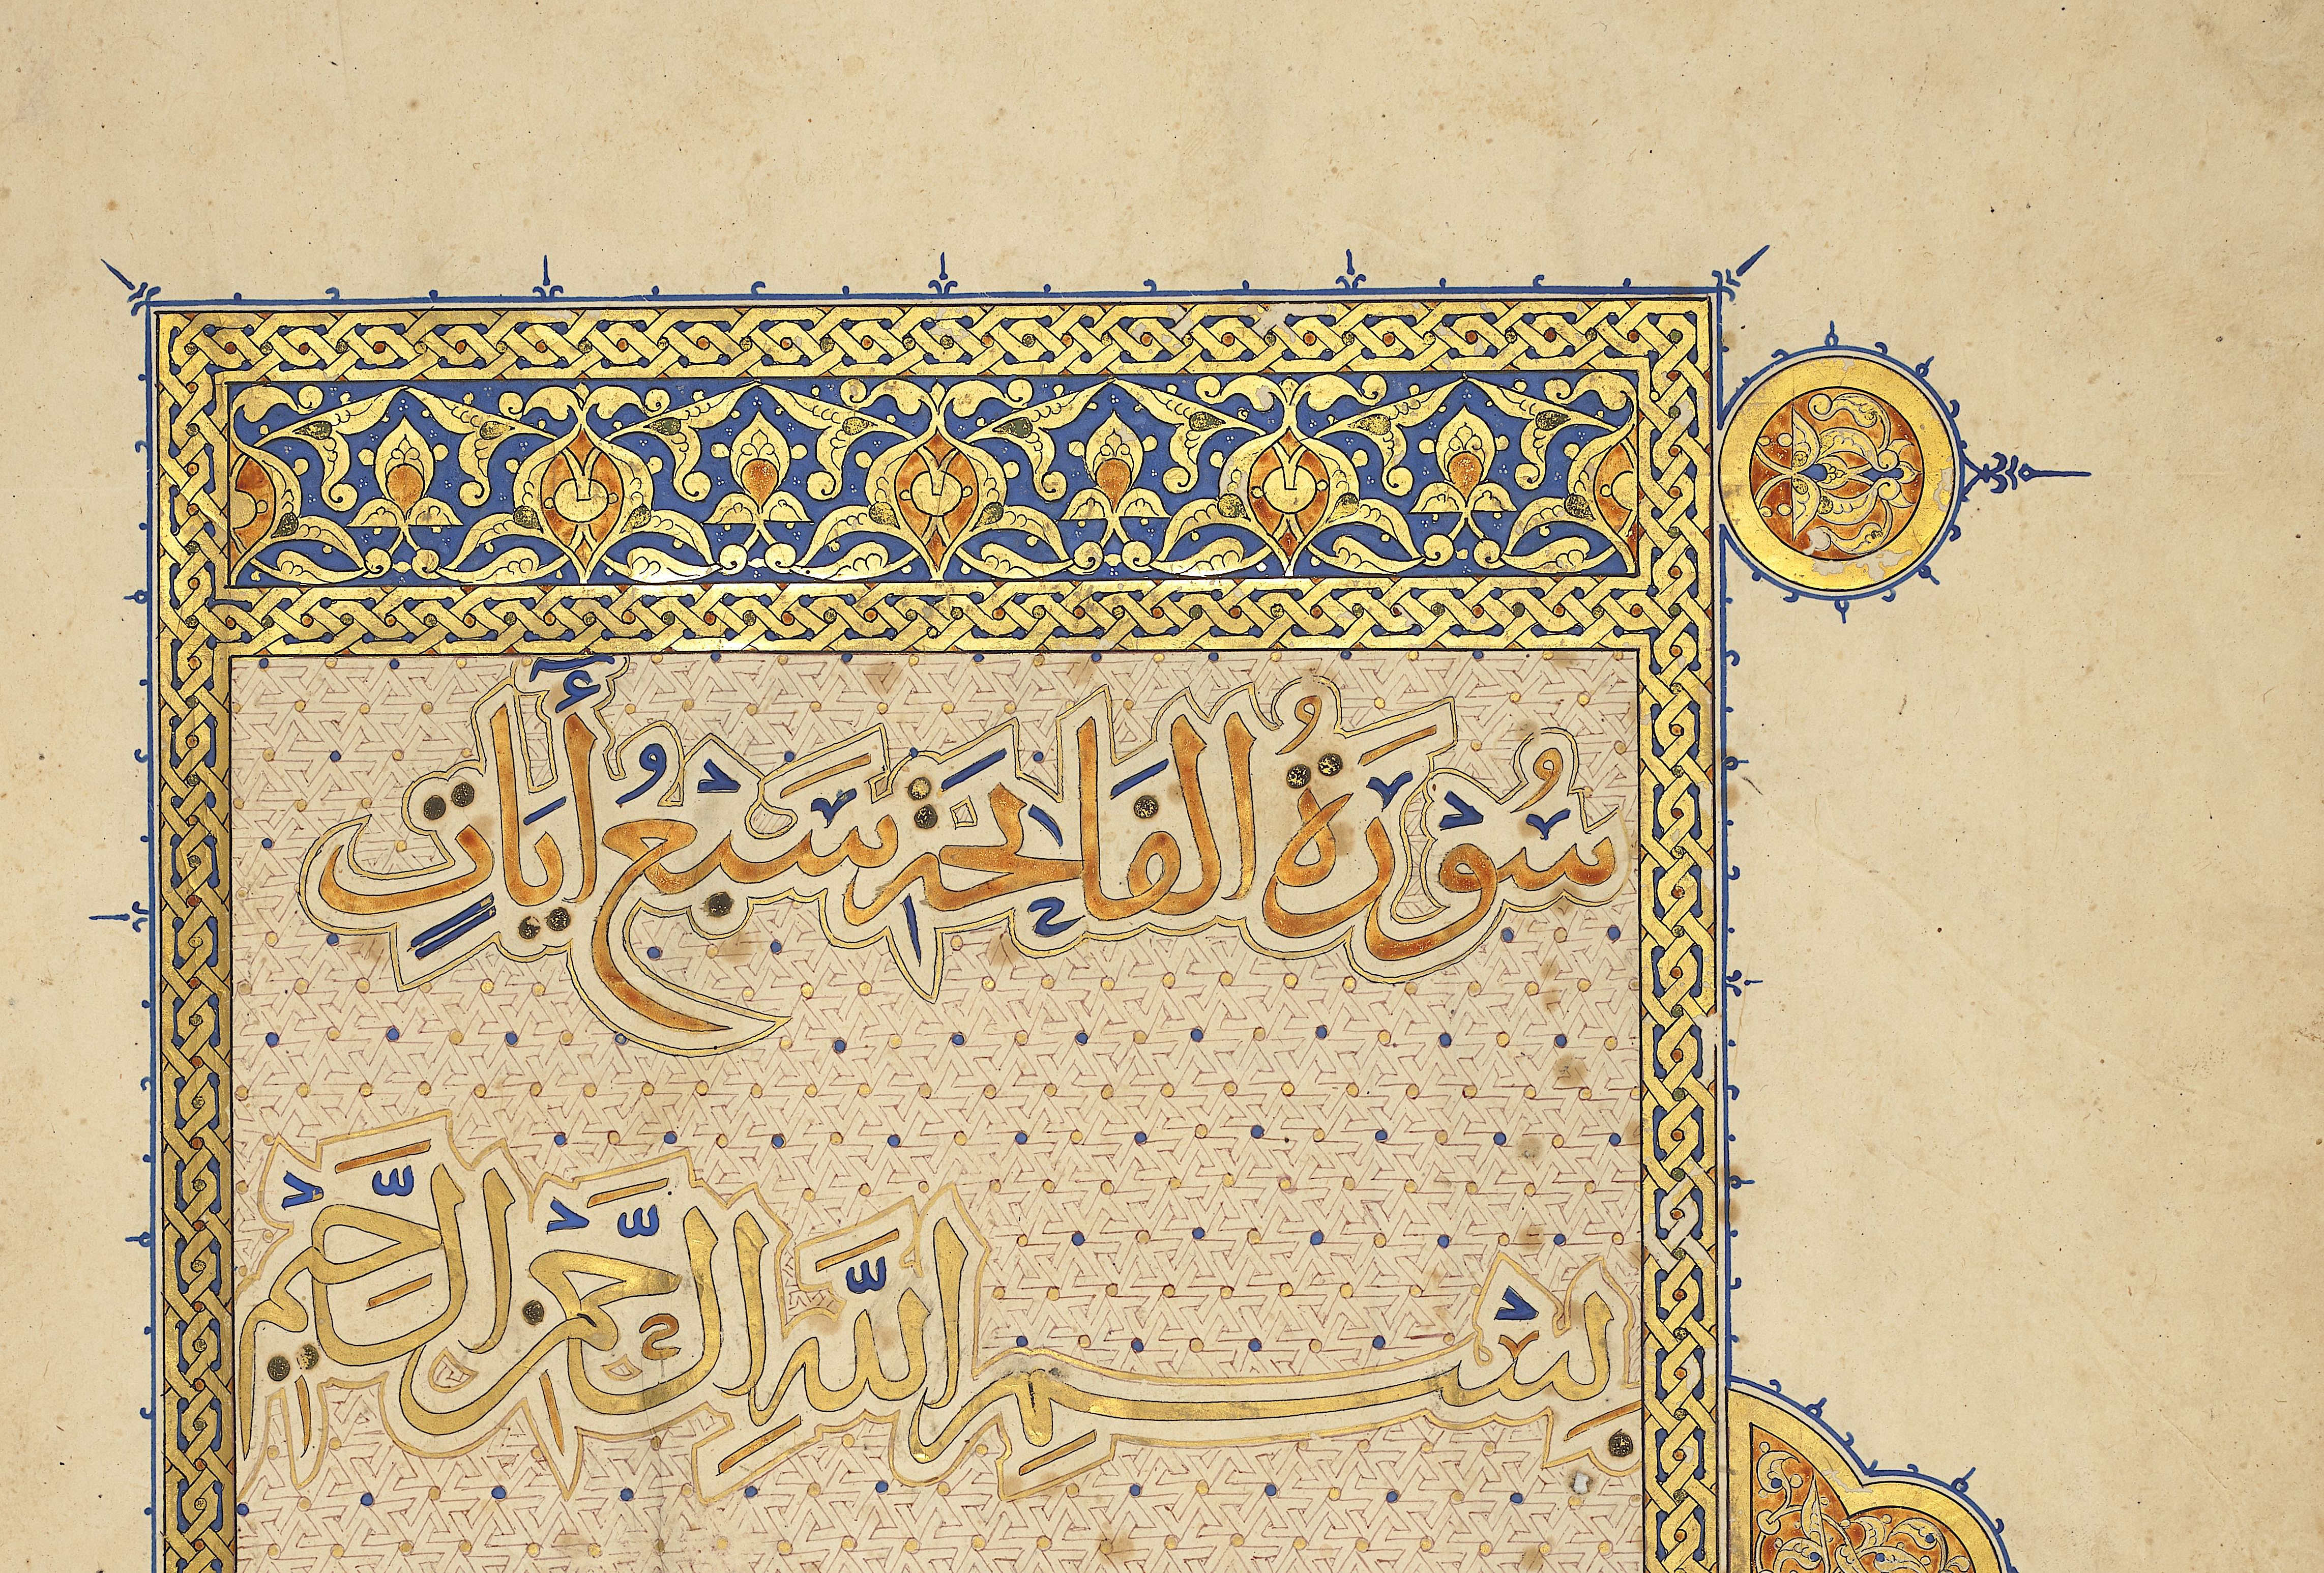 Sūrat al-Fātiḥah at the beginning of Sultan Baybars' seven-volume Qur'an